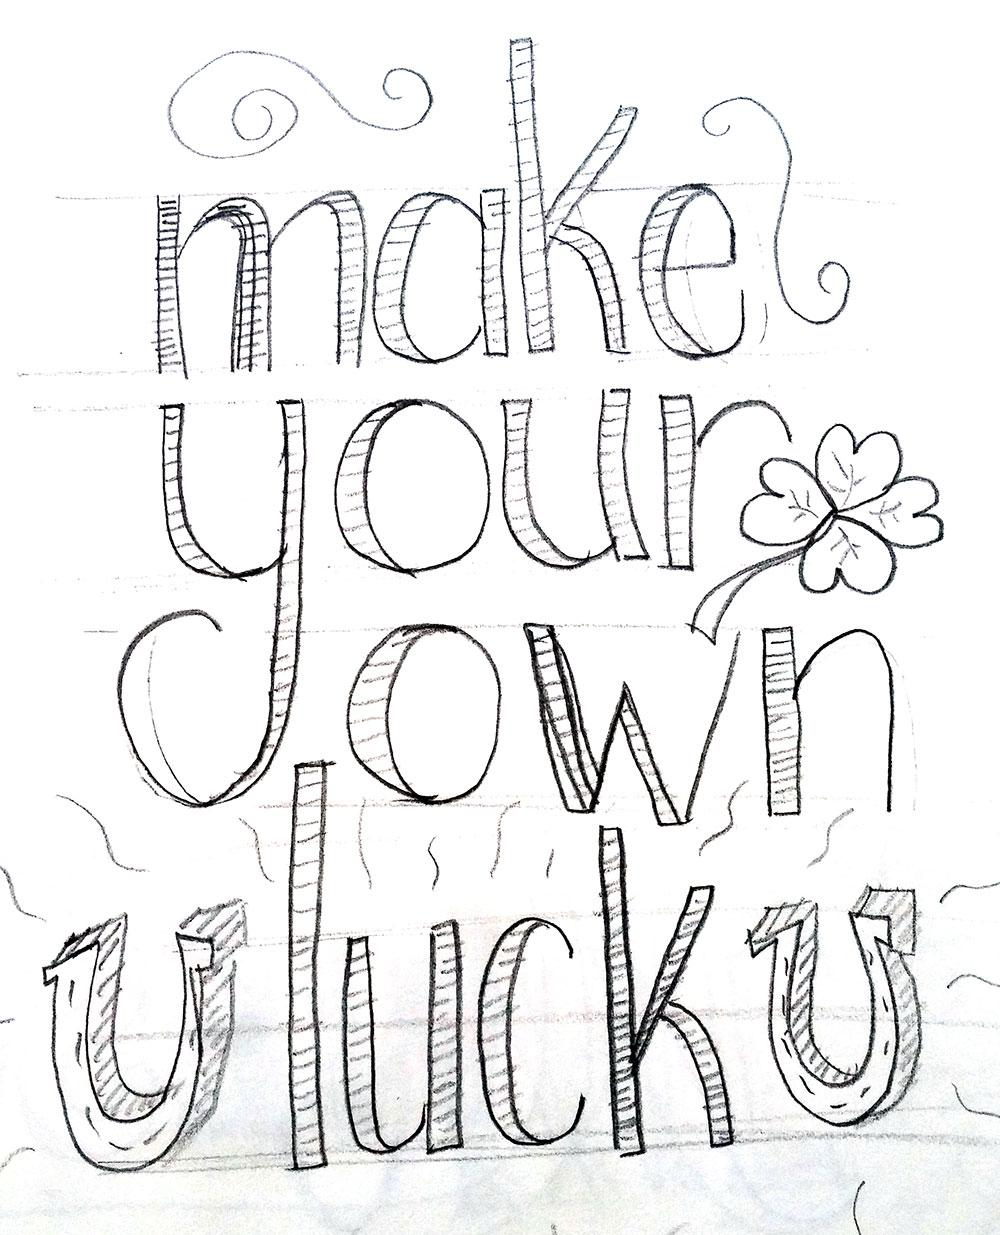 Make Your Own Luck Letterform Study  - image 2 - student project